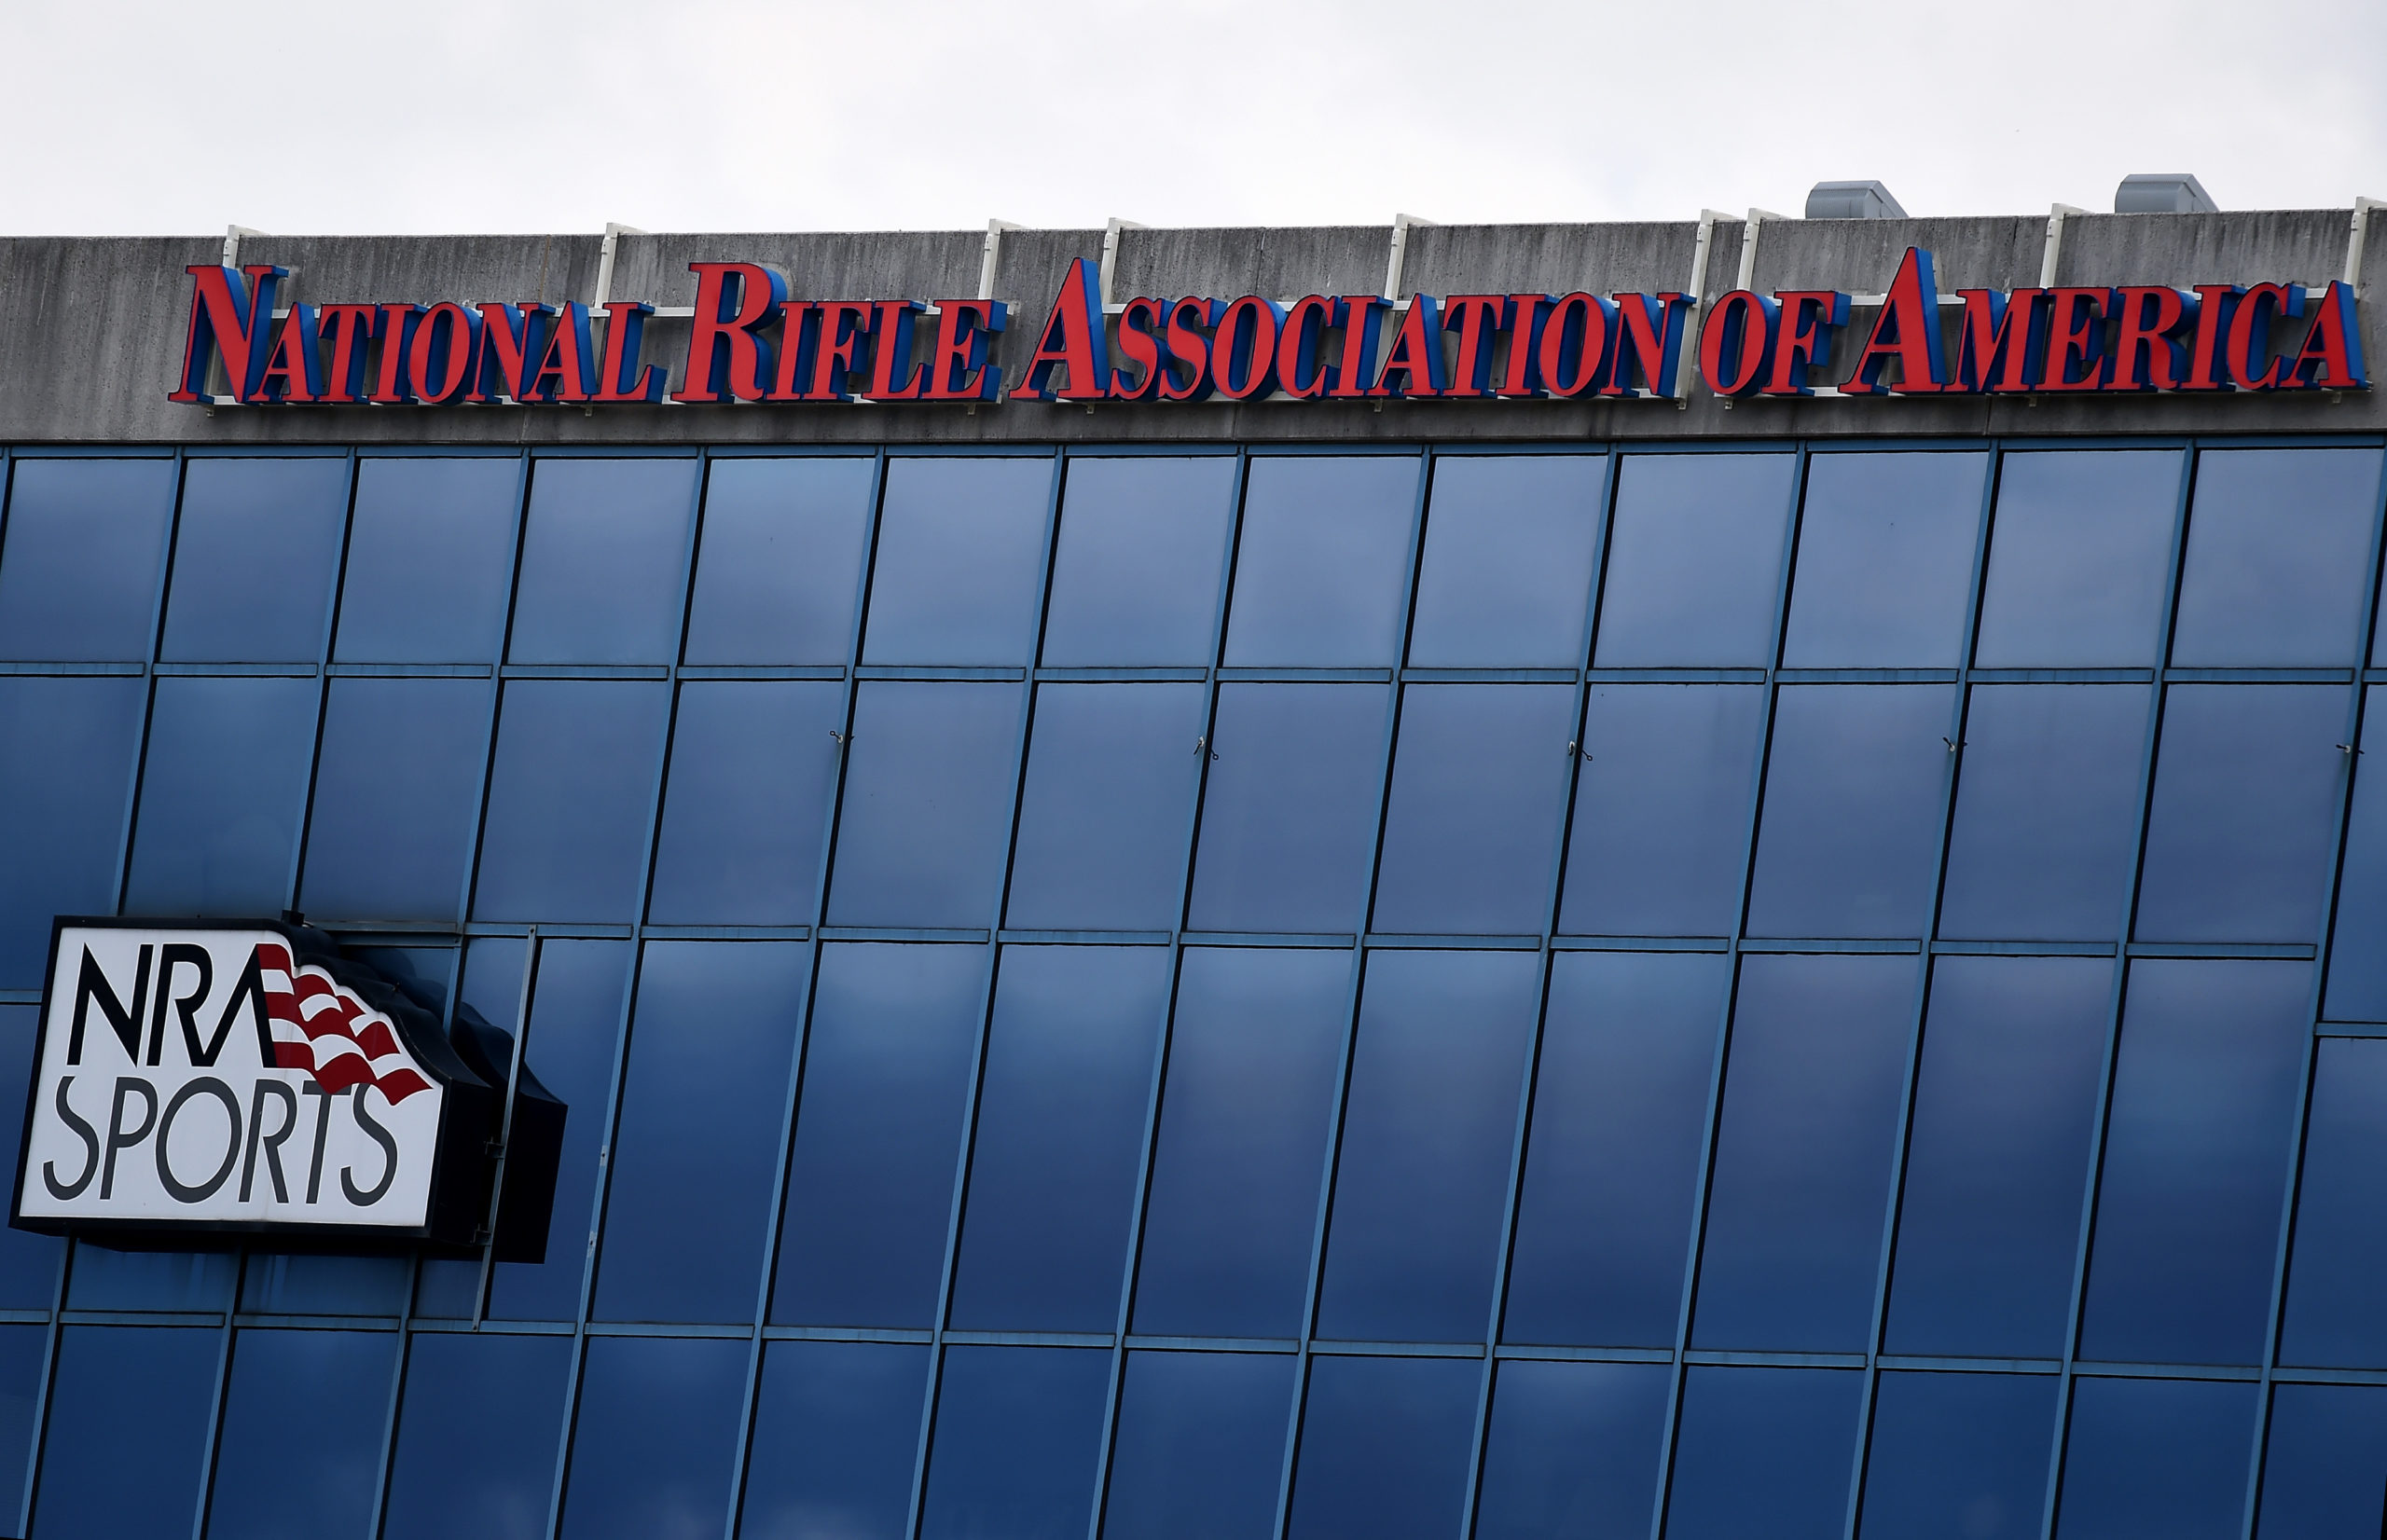 The National Riffle Association of America headquarters pictured on Aug. 6 in Fairfax, Virginia. (Olivier Douliery/AFP via Getty Images)